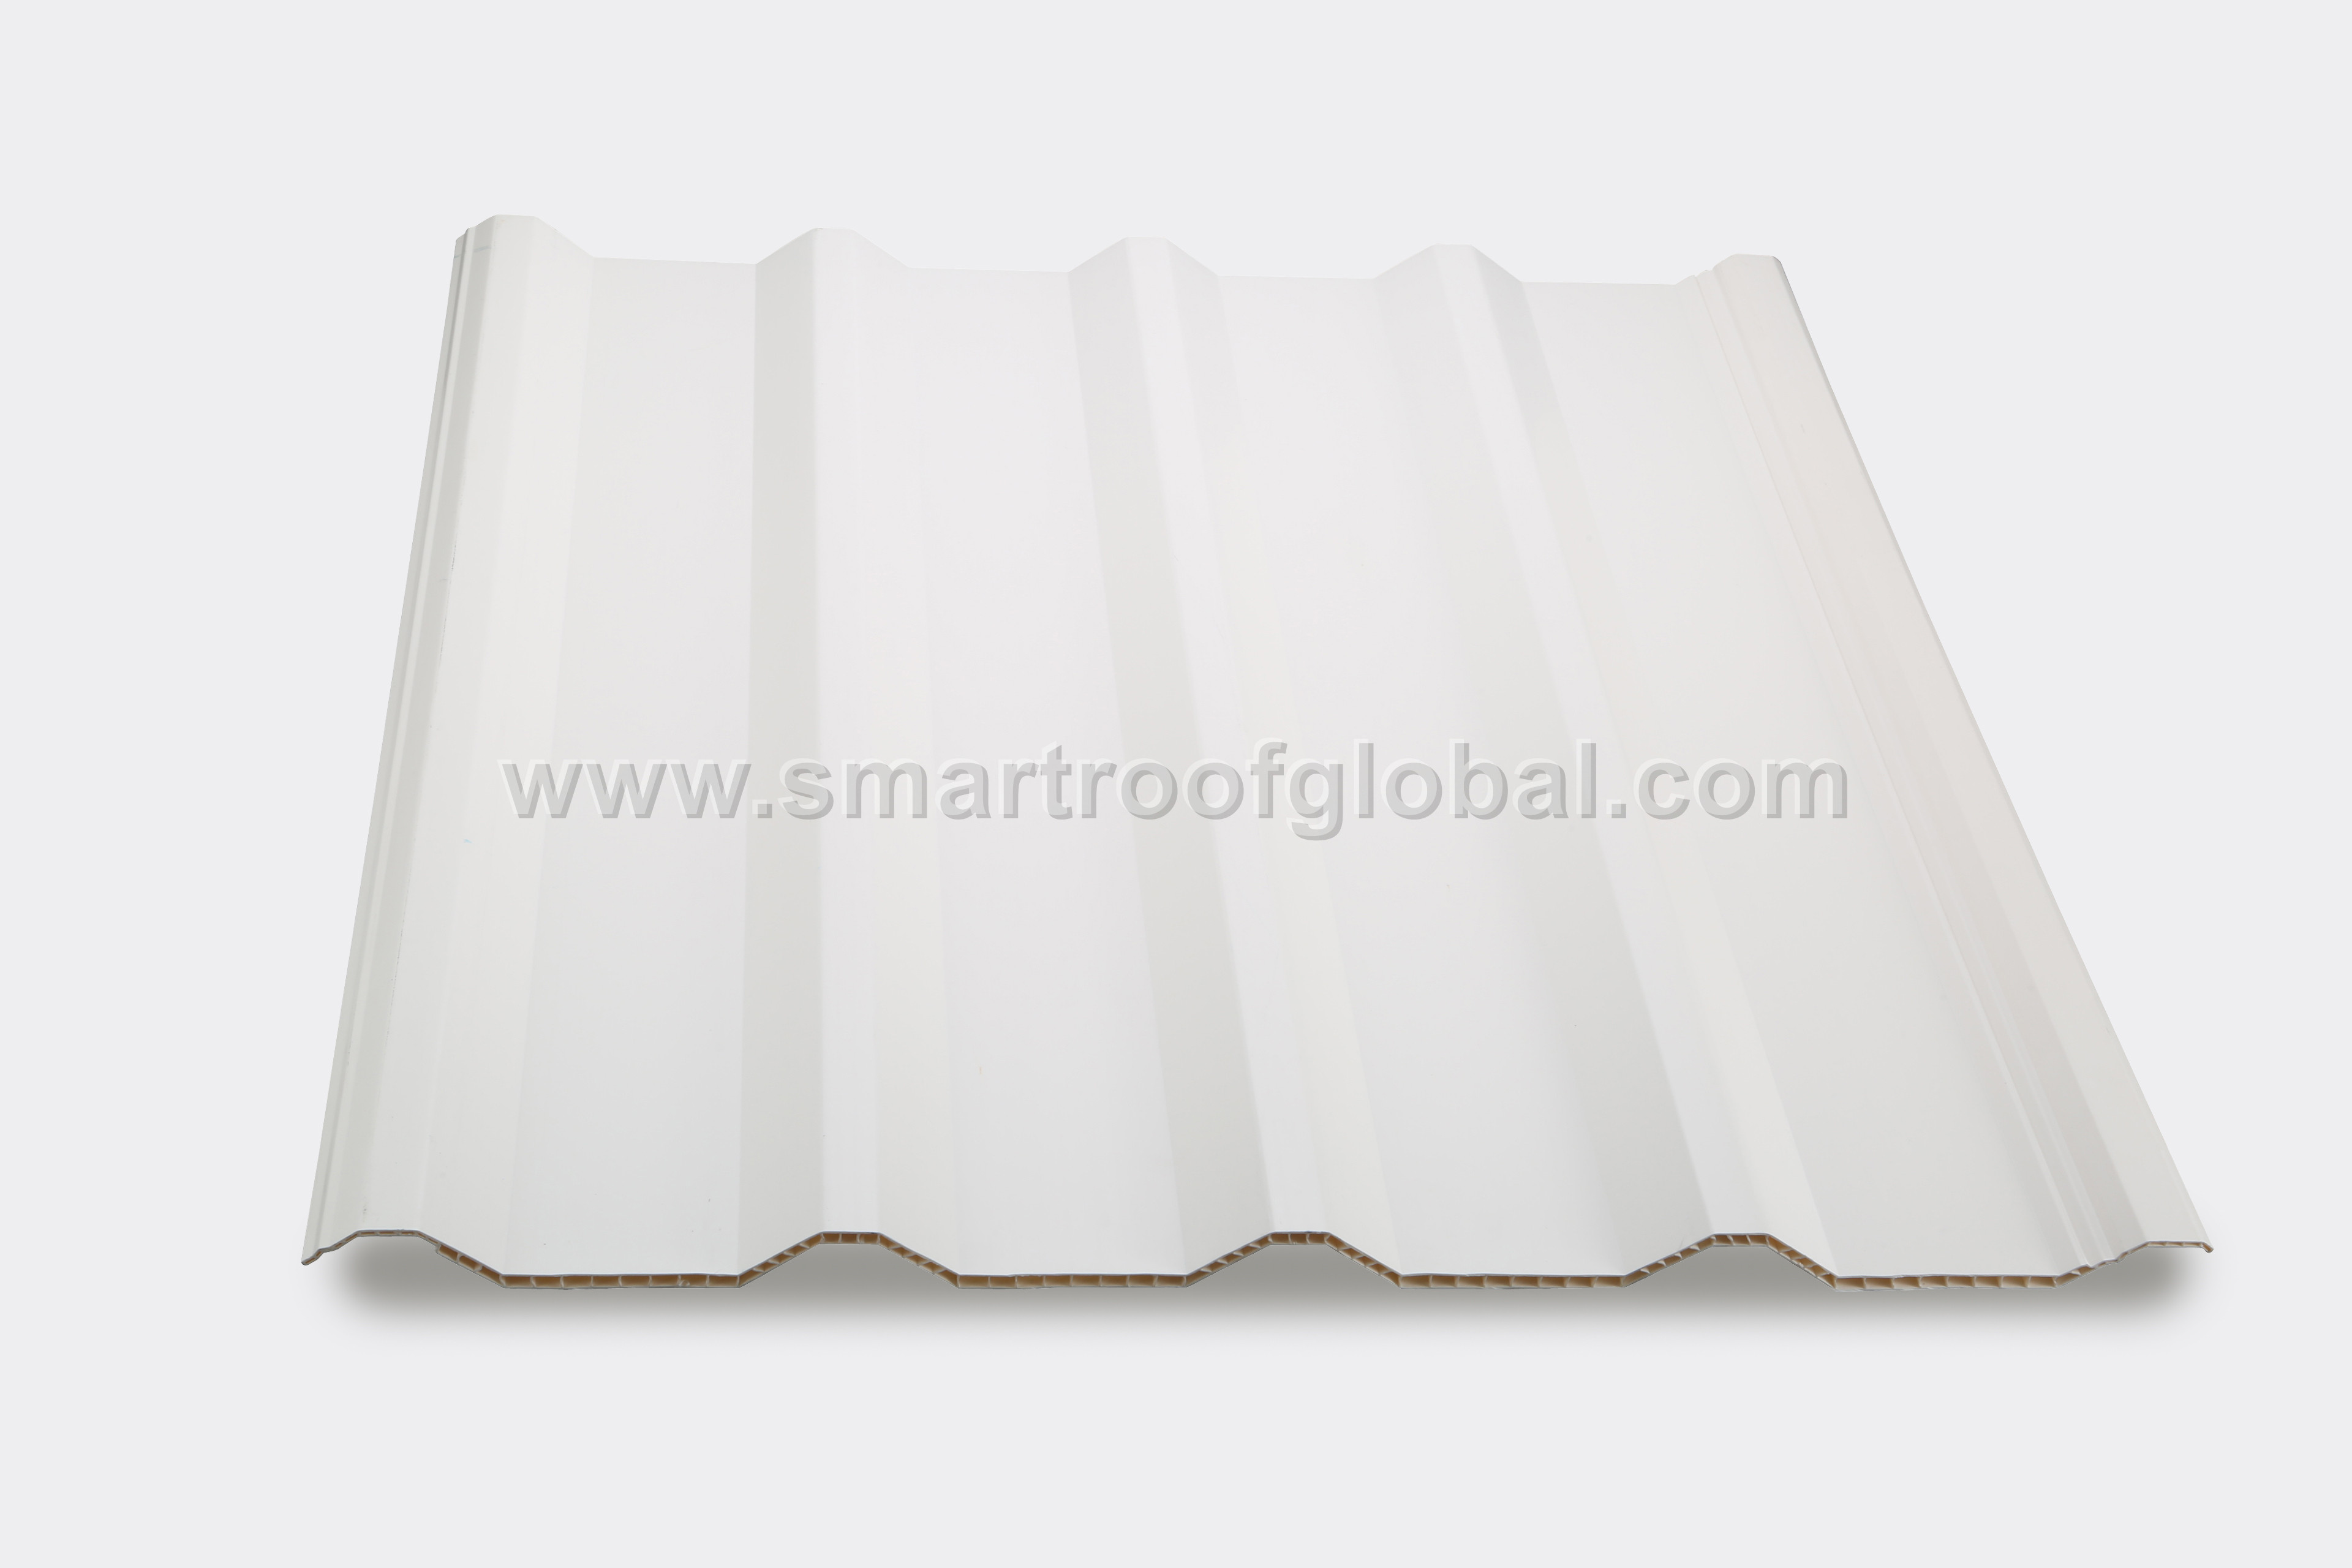 Polycarbonate Roof Featured Image